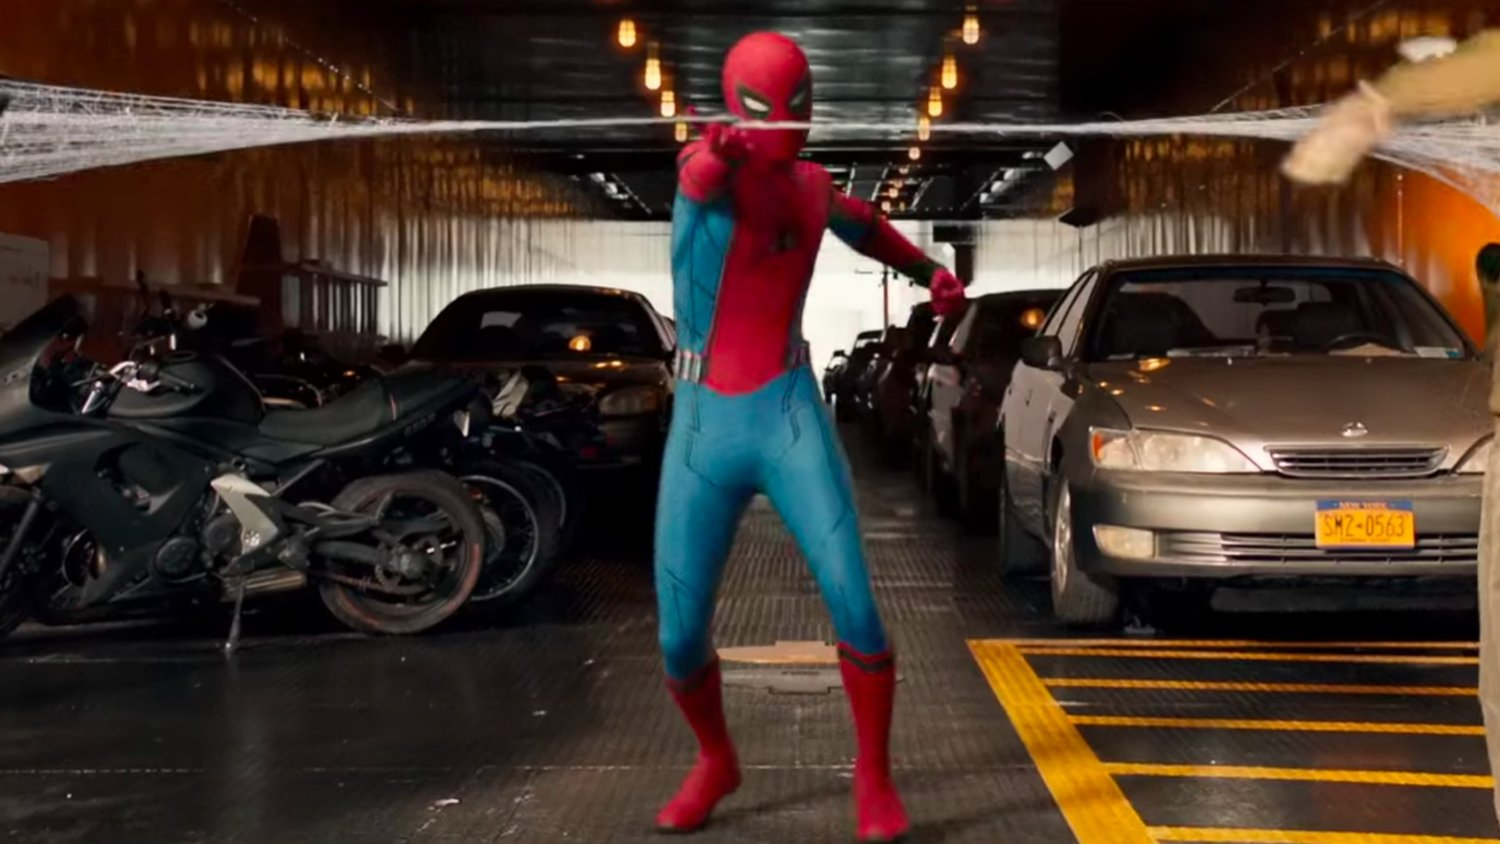 SPIDER-MAN: HOMECOMING - Easter Eggs and Other Things You May Have Missed